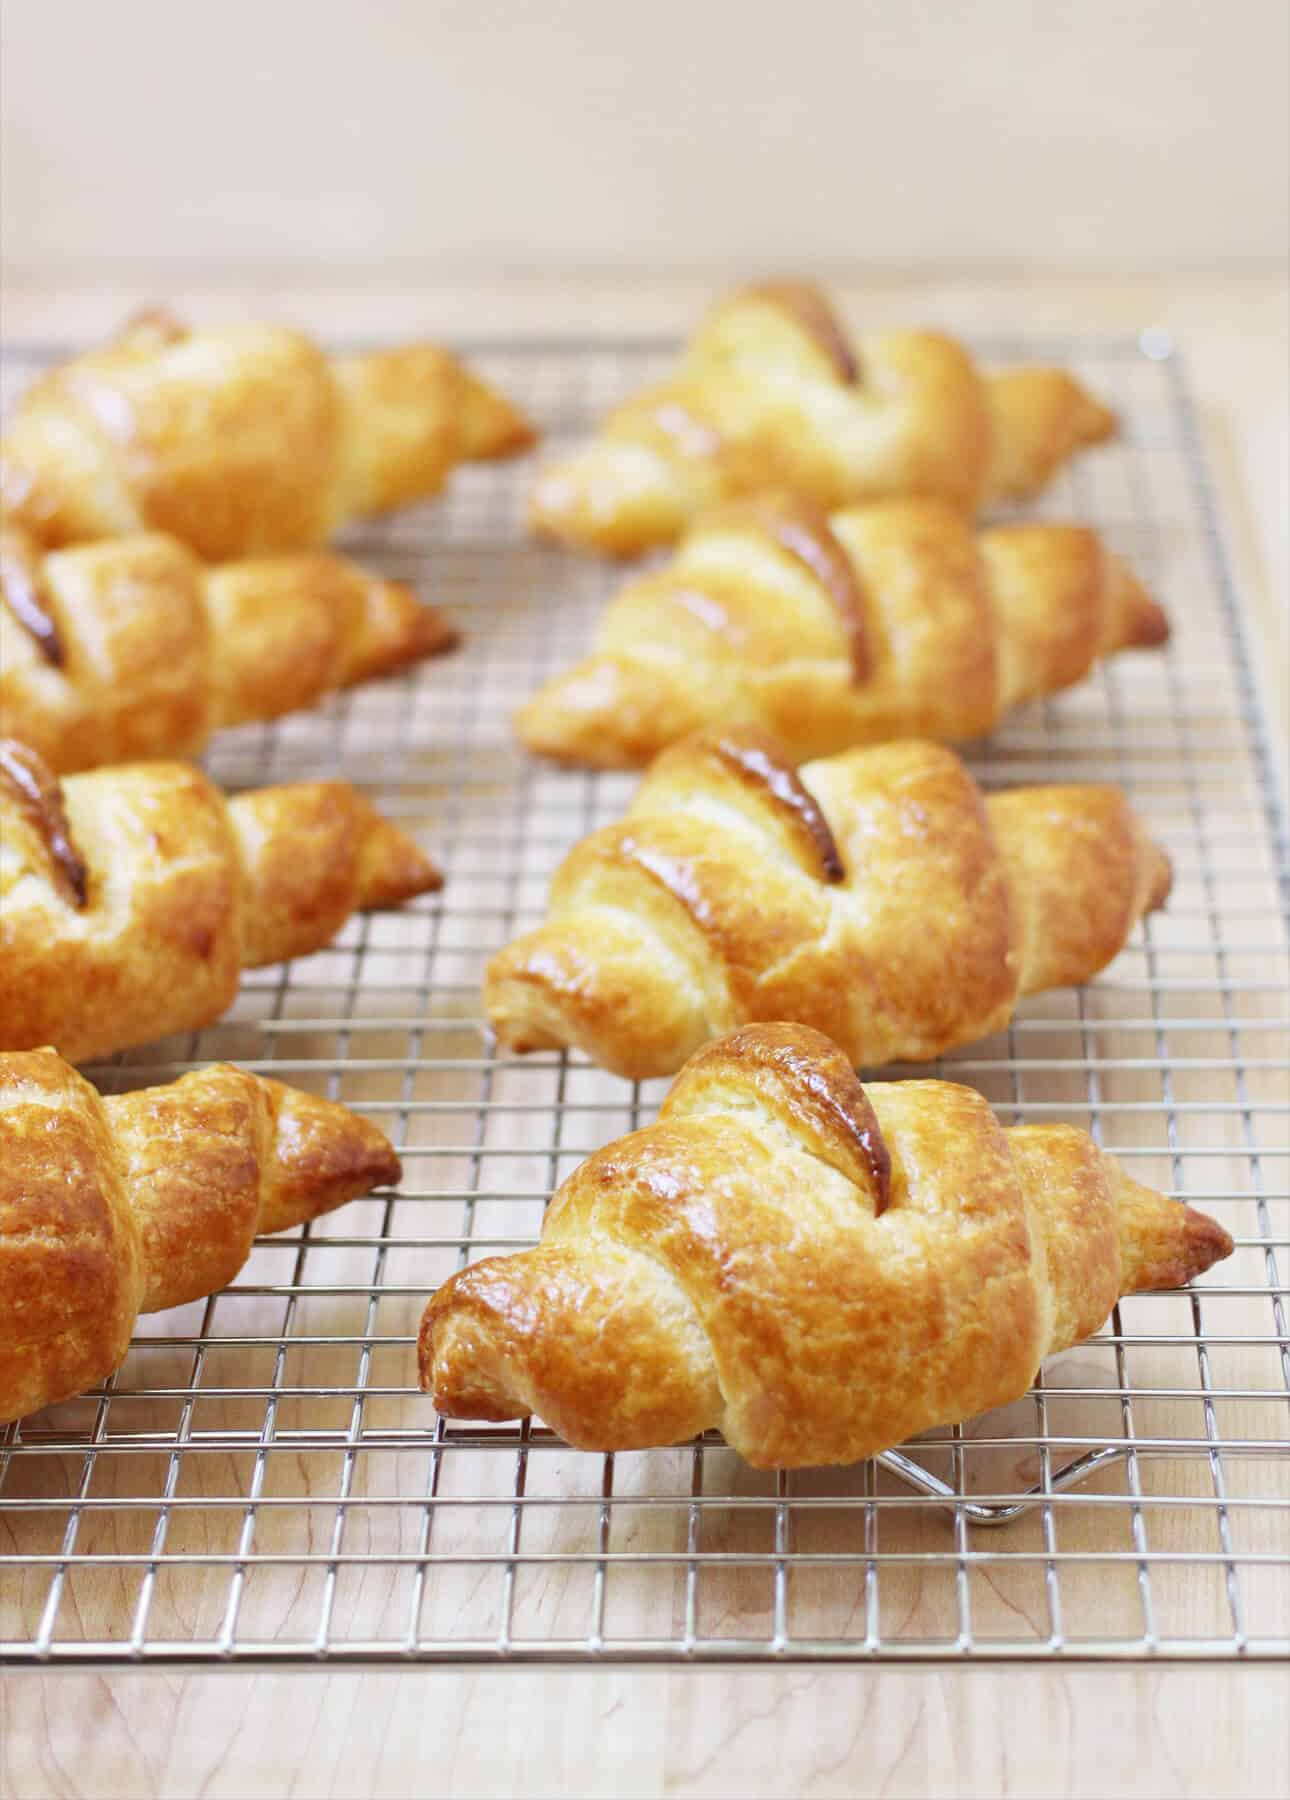 Homemade Croissants from In the French Kitchen with Kids